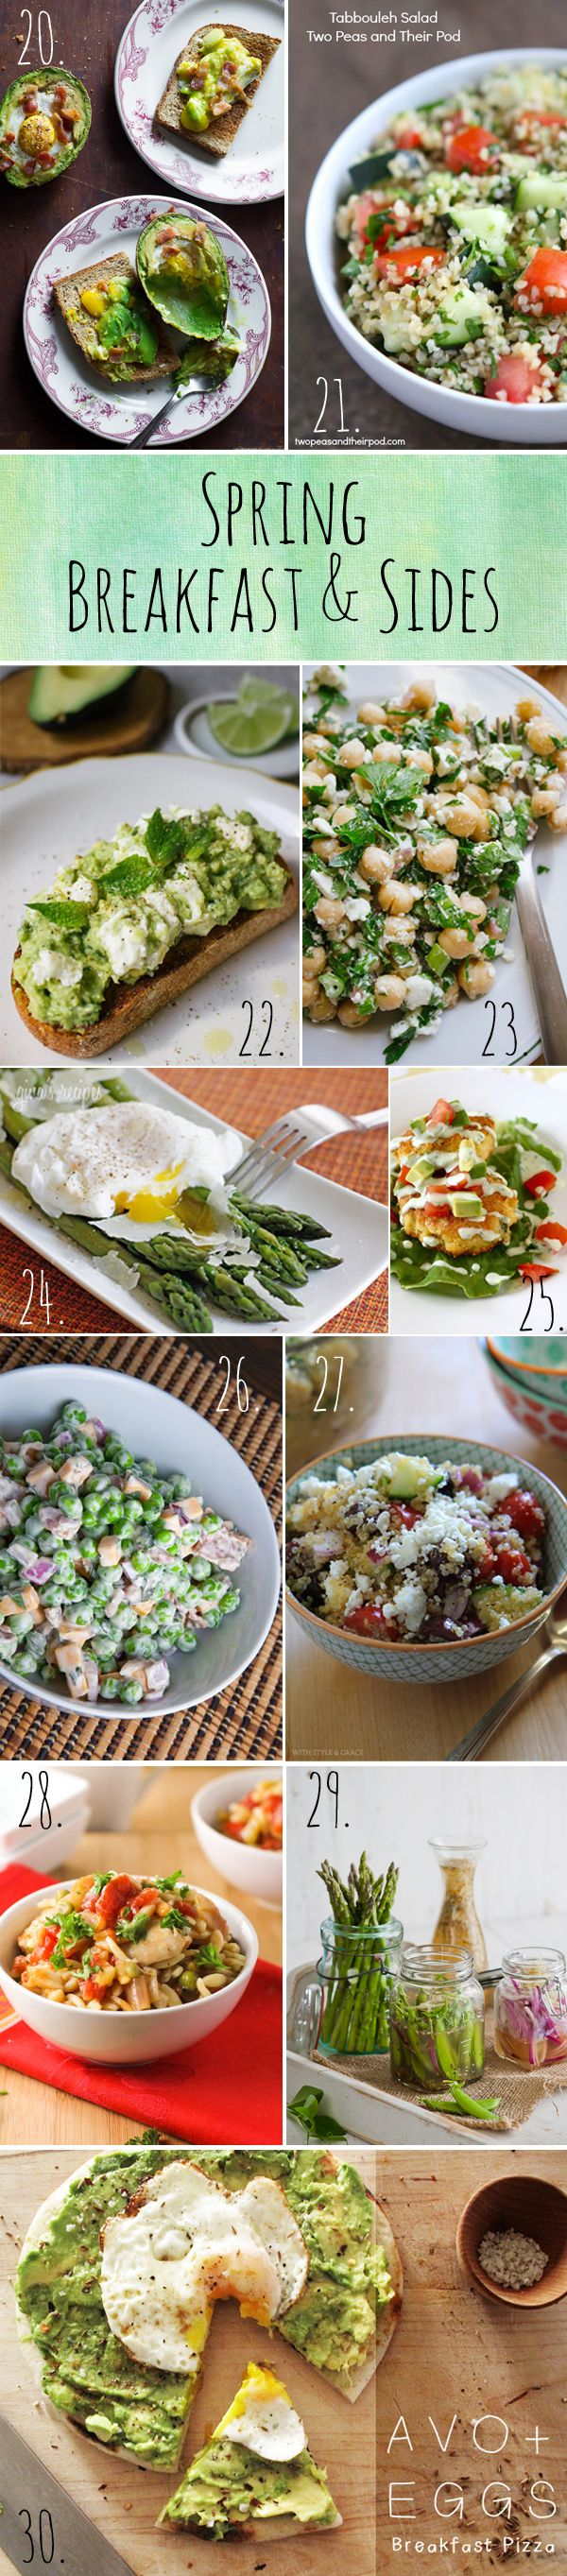 Spring may not officially start until 3/20, but does that mean we can't get a head start on these delicious recipes? #food #recipes #spring